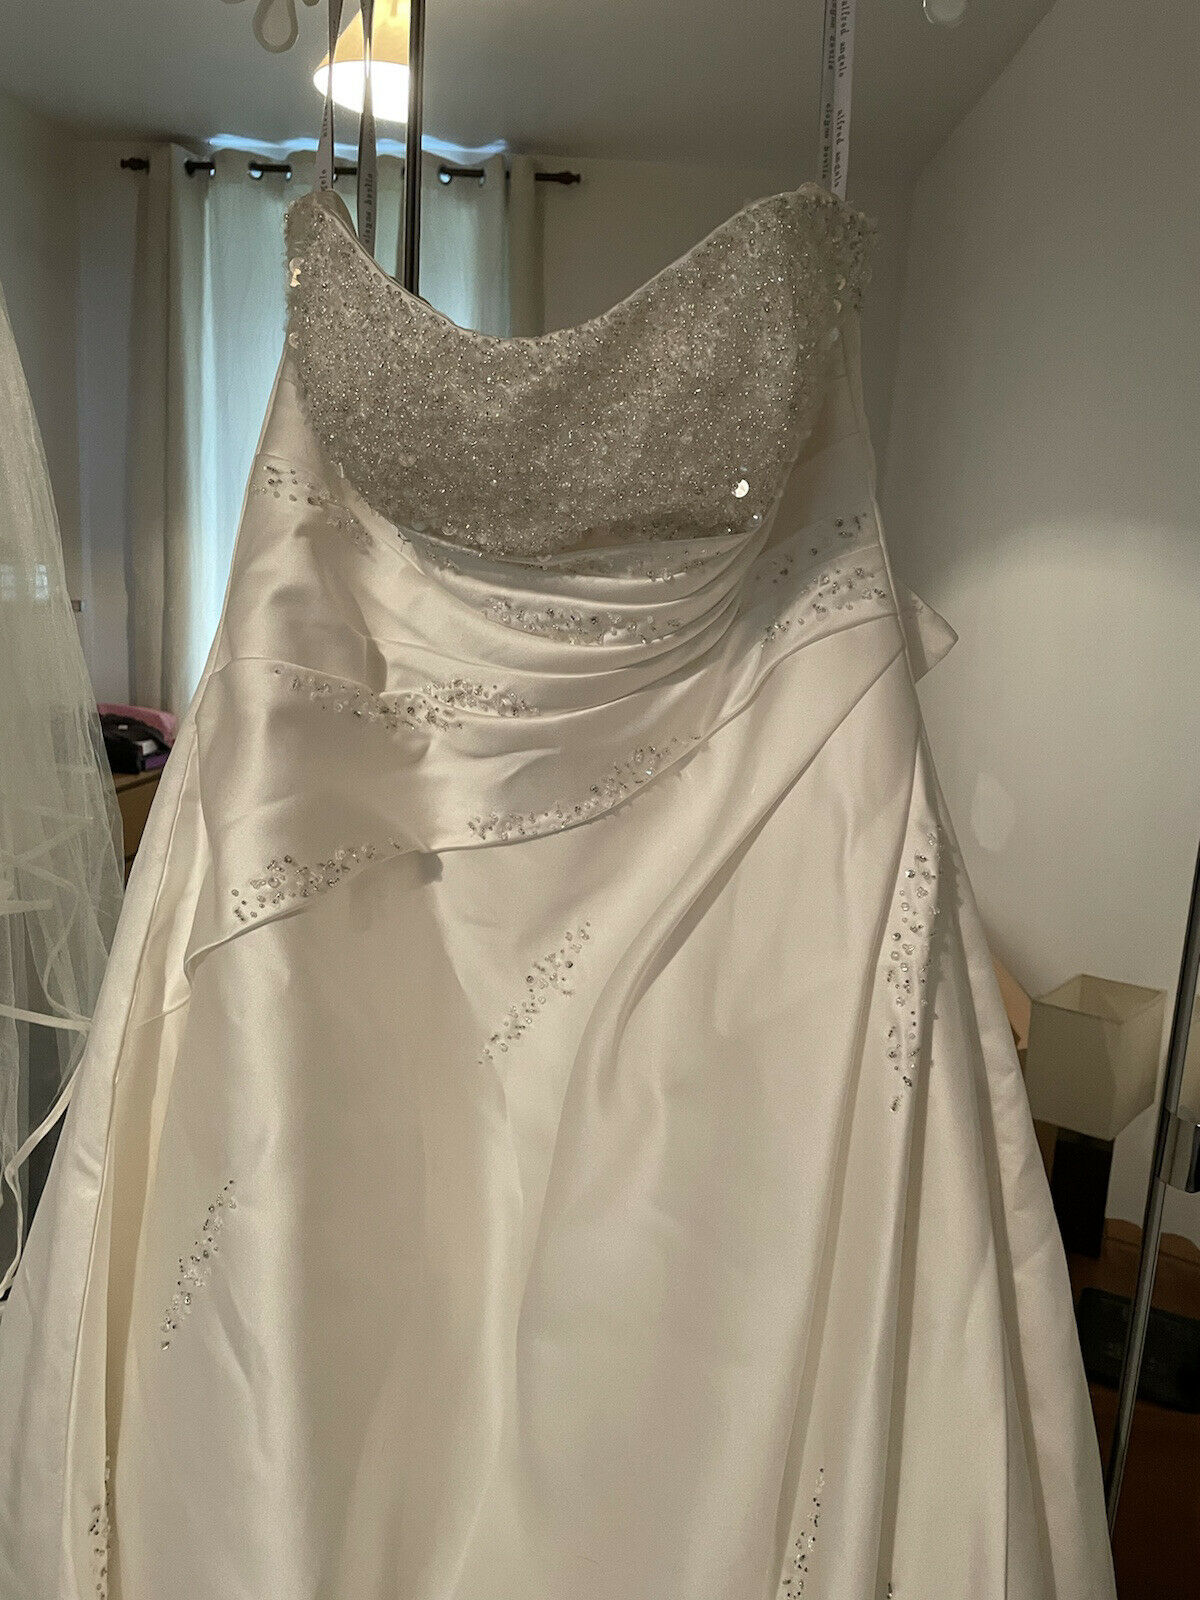 alfred angelo wedding dress together With Vail Size UK 20 Altered to Size 18